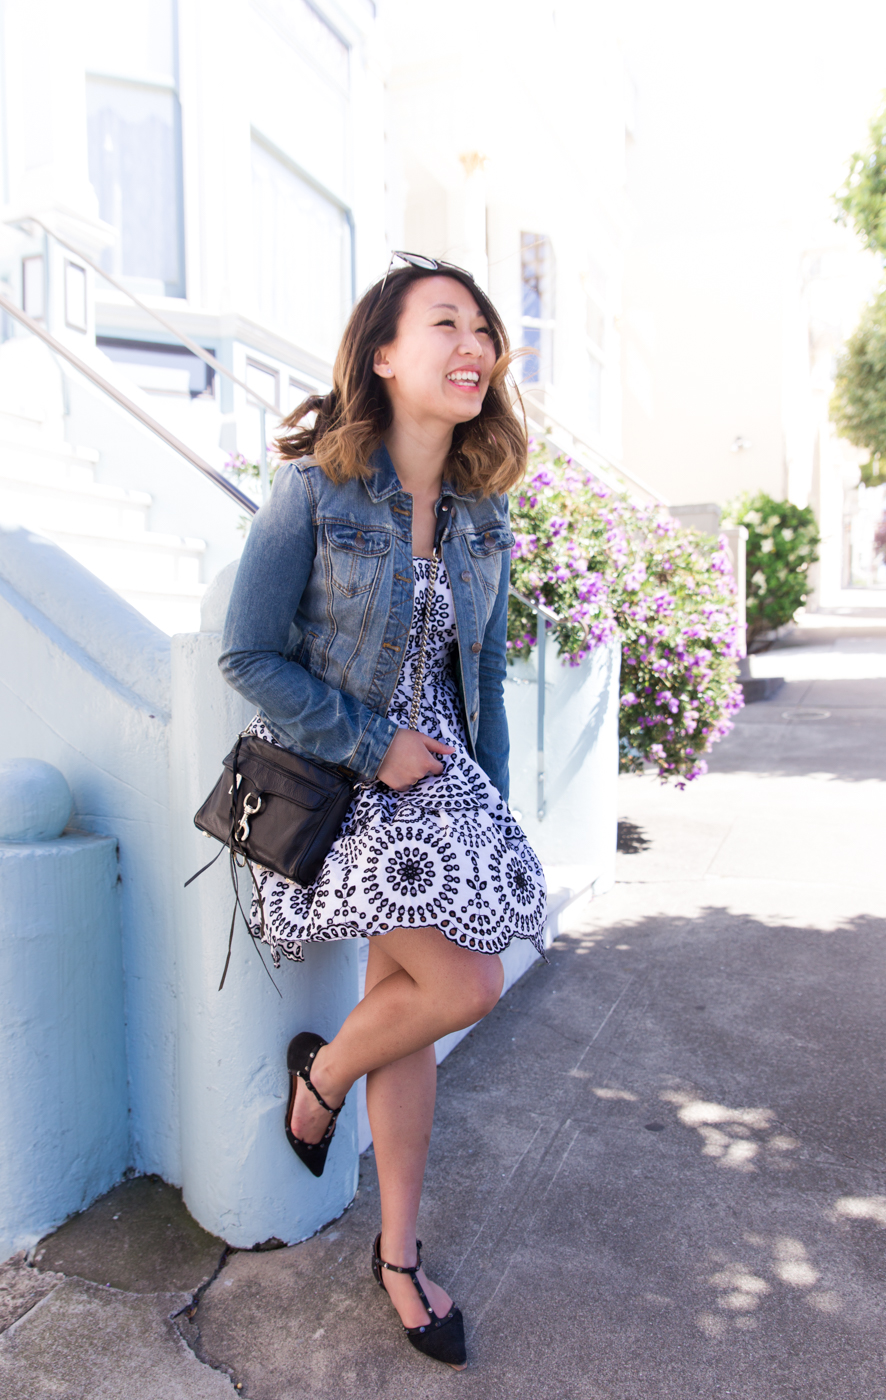 Denim Jacket Over Summer Dress | The Chic Diary